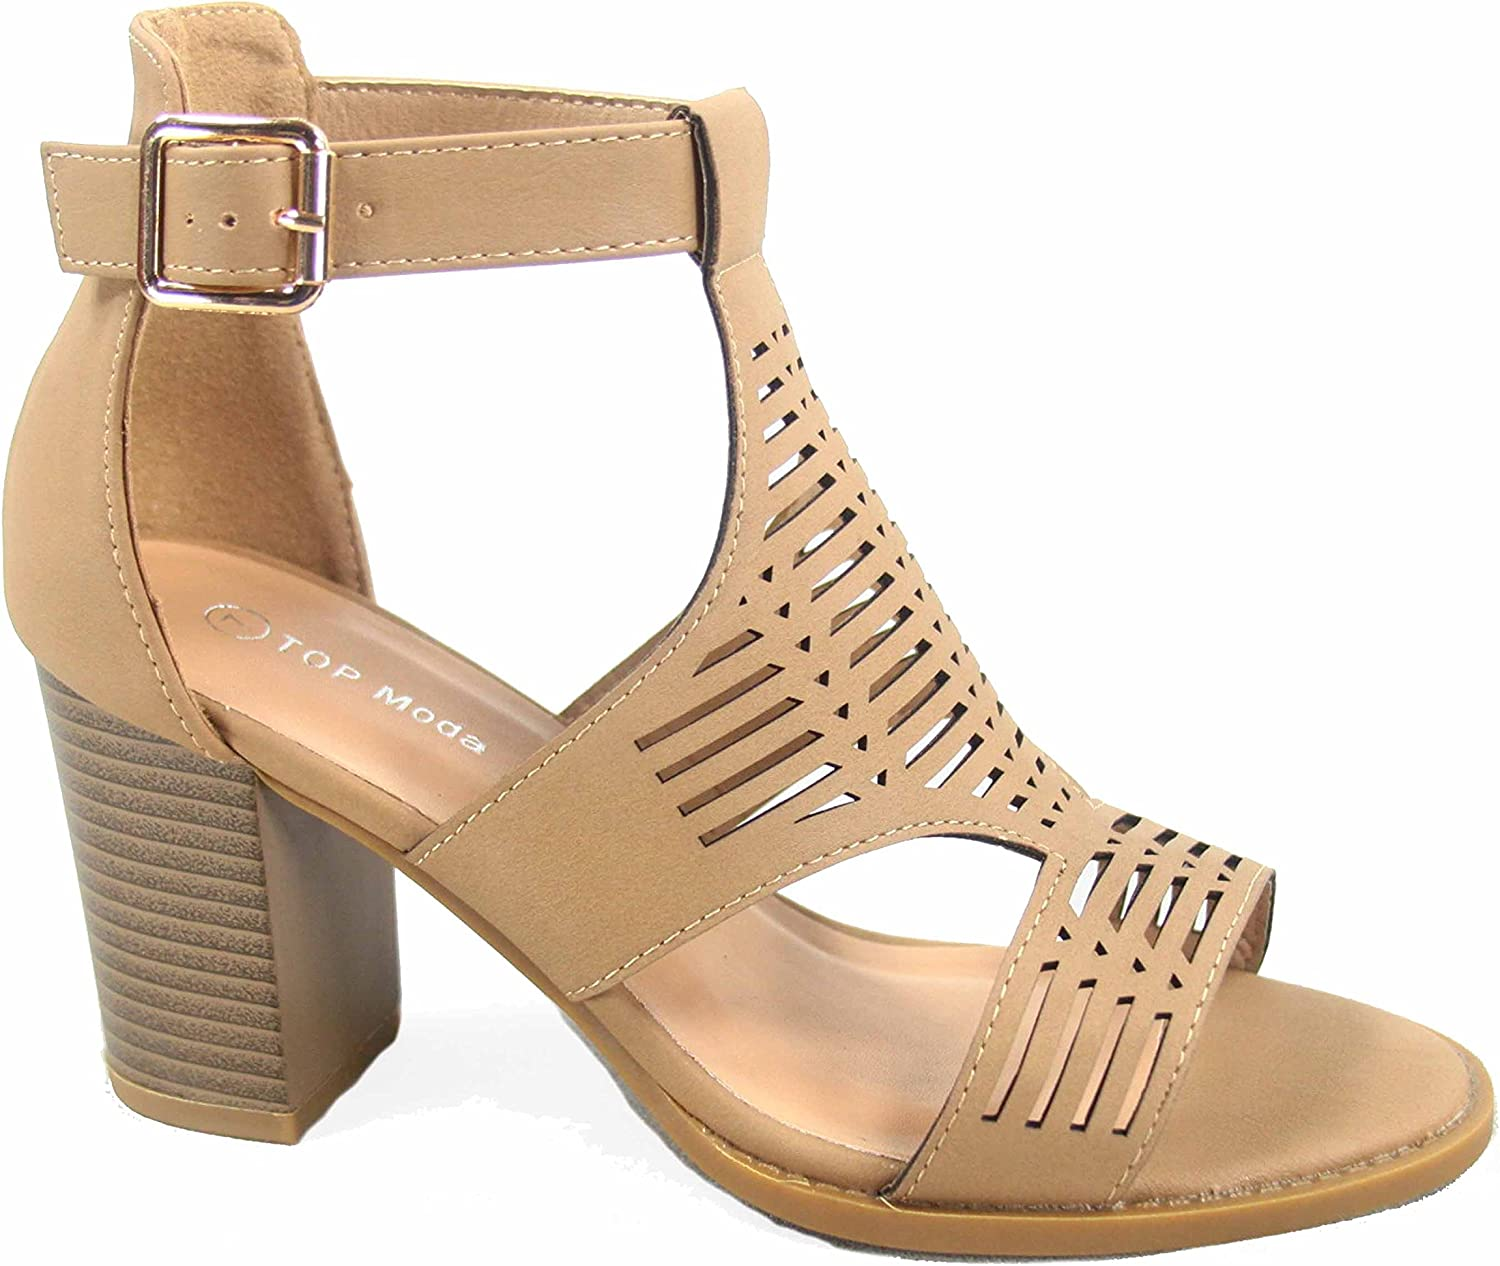 Top Moda Myth-50 Women's Fashion Open Toe Ankle Strap High Heel Sandal shoes